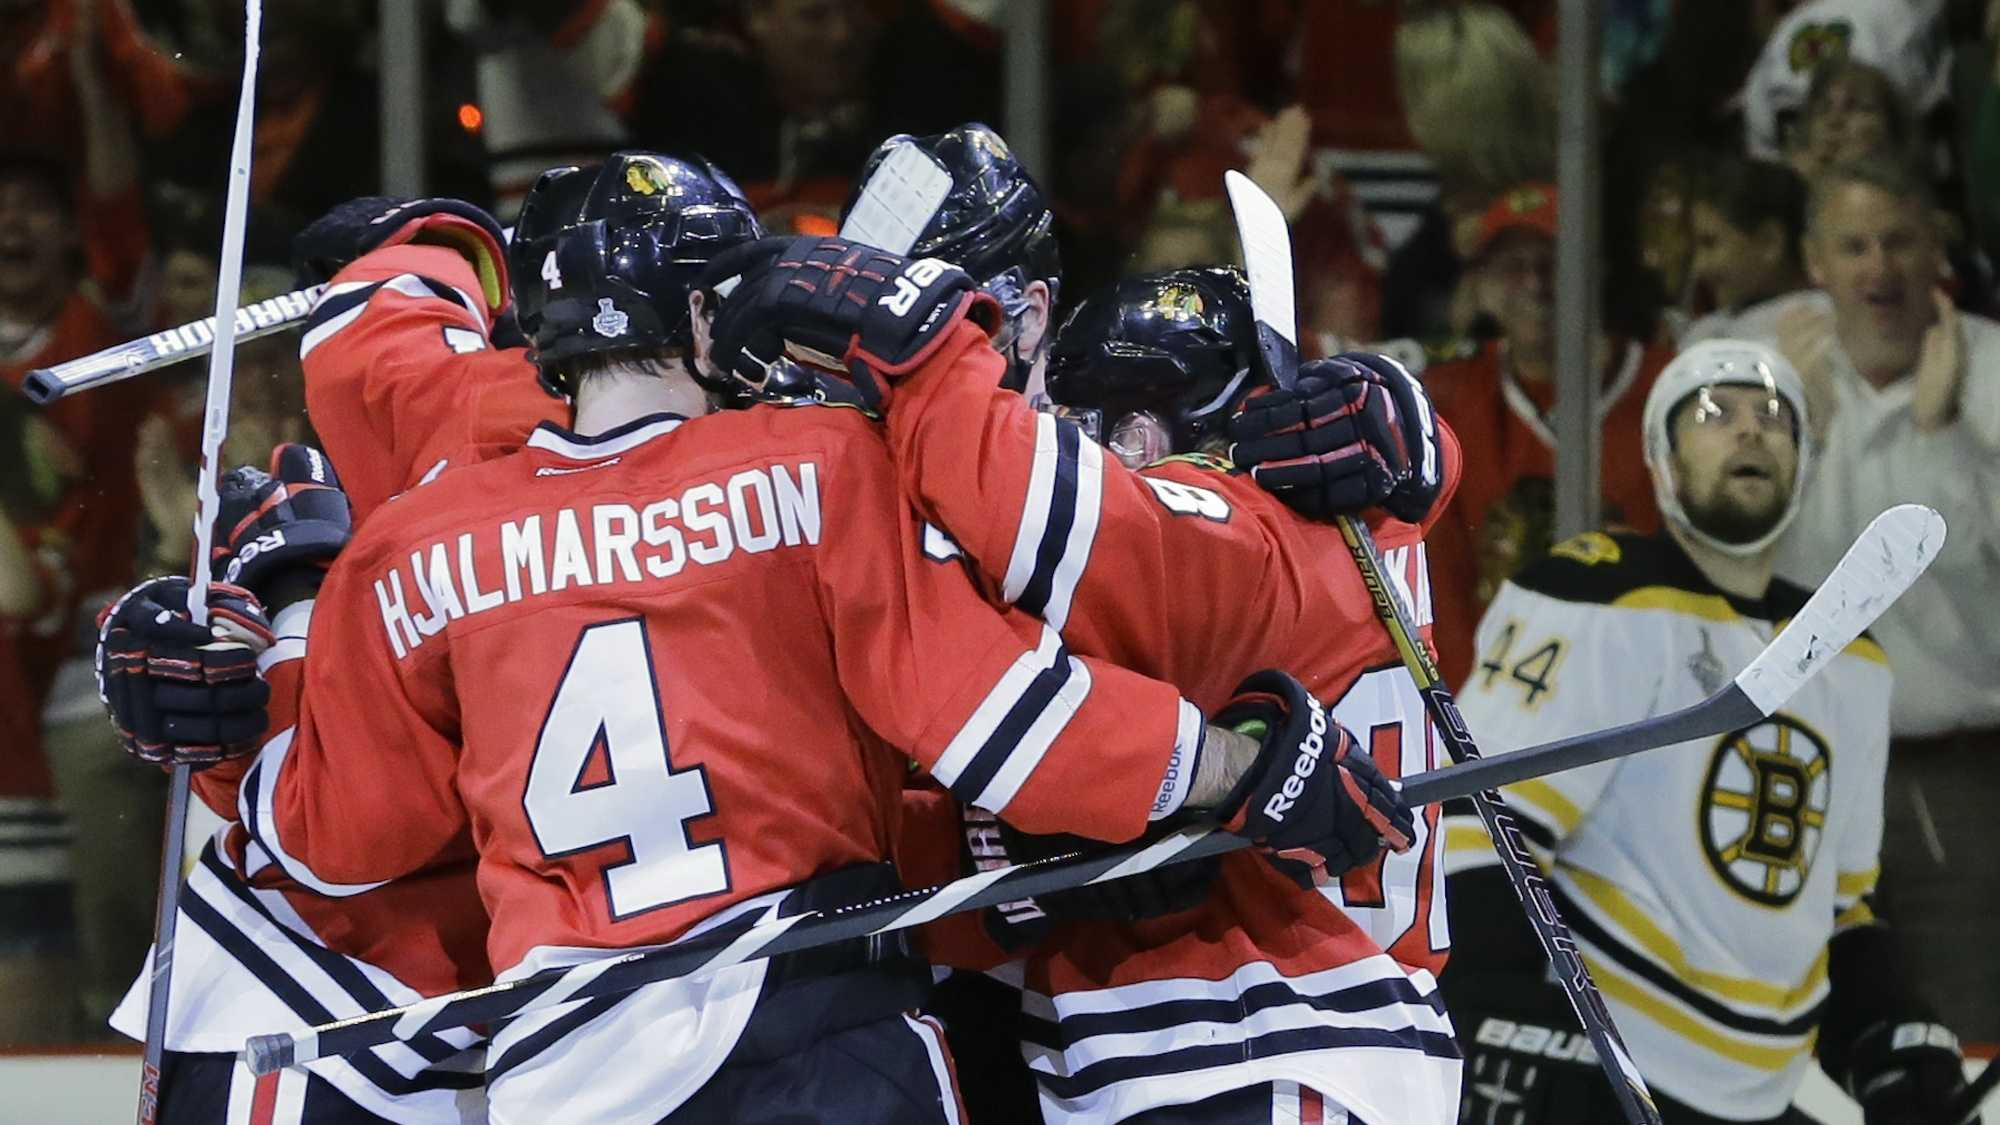 Blackhawks celebrate goal 062213